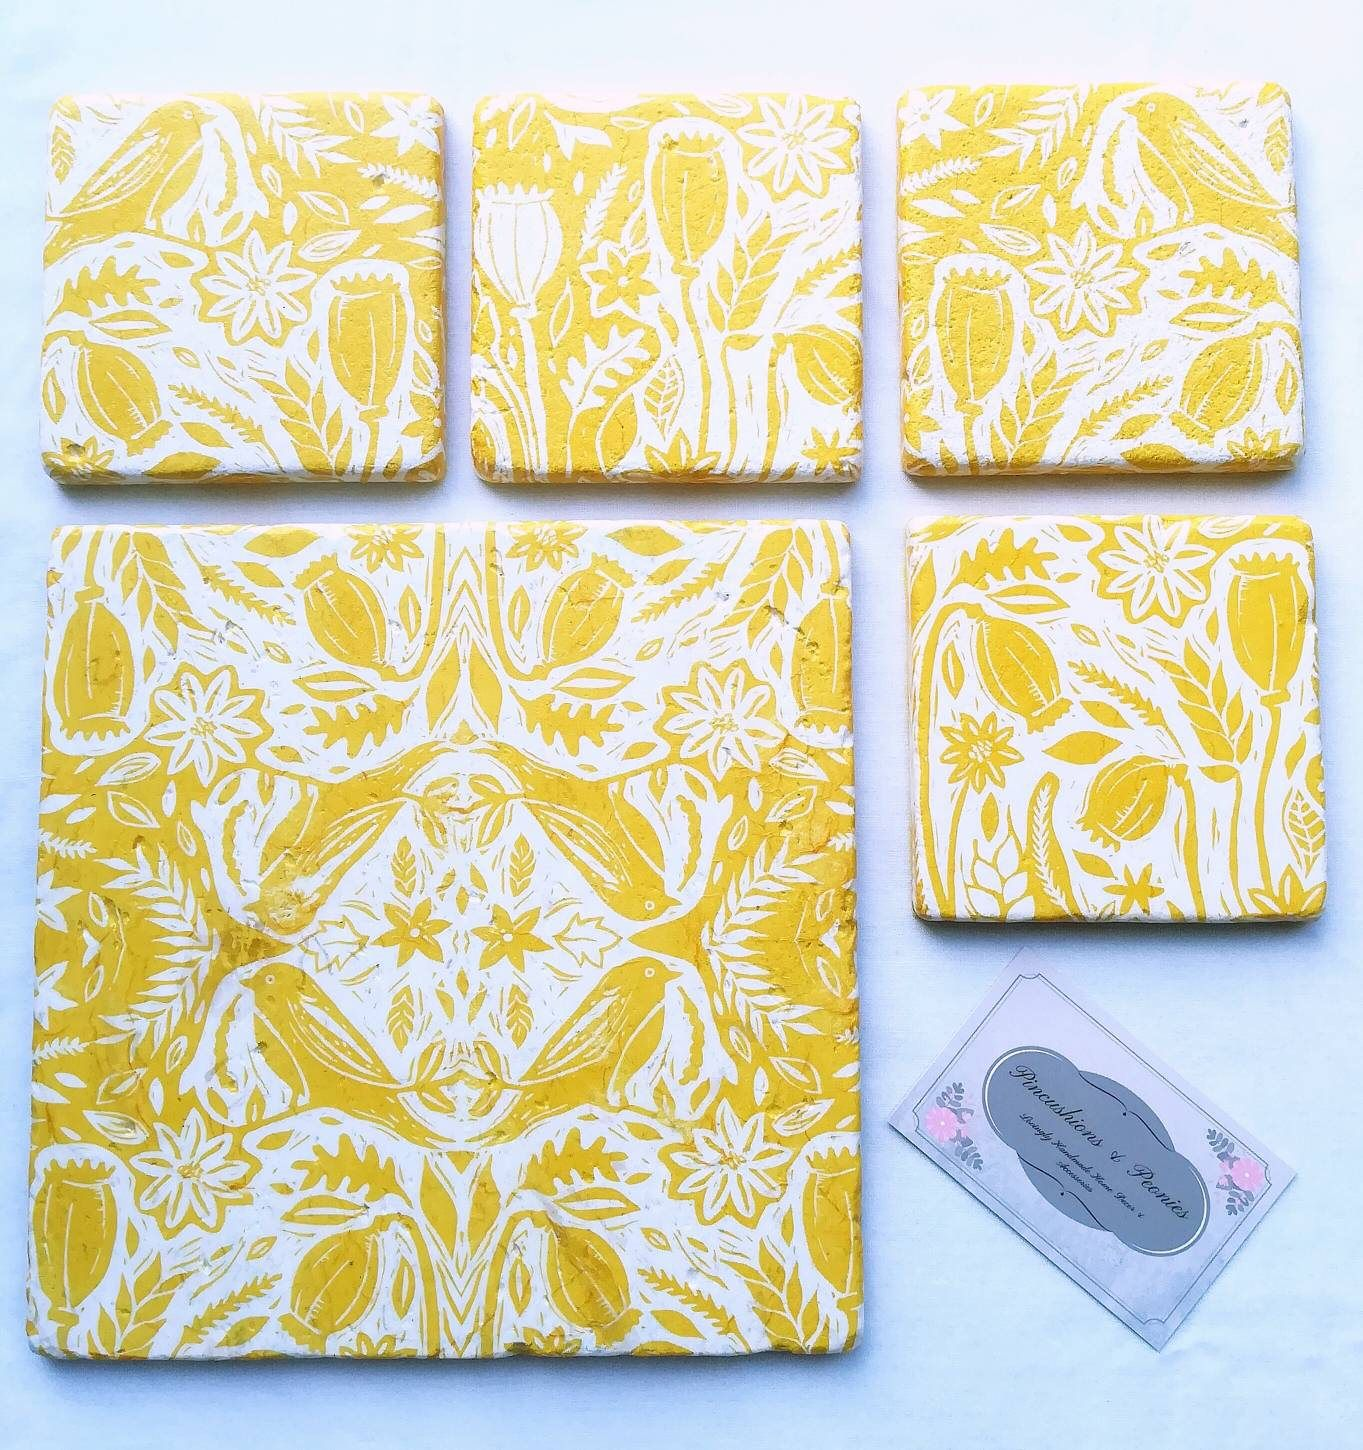 Yellow White Nature Placemat Coaster Set Placemats Coasters Stone Tableware Ochre Mustard Yellow Decor Natural Decor Yellow Coaster Mustard Yellow Decor Nature Decor Yellow Decor